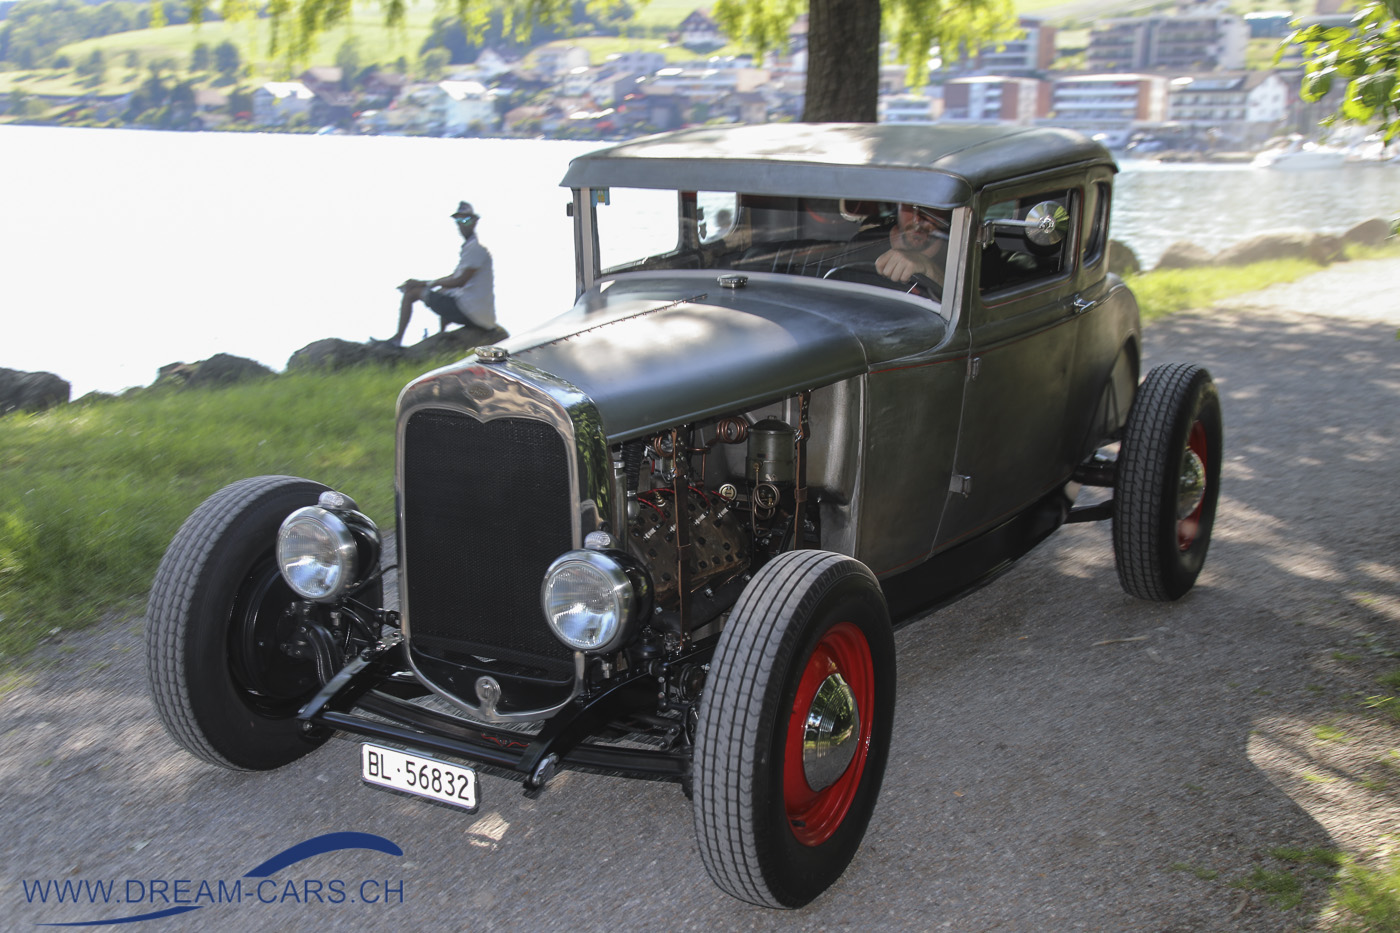 Lakeside American Classic Meeting, 01./02. Juni 2019, Küssnacht am Rigi